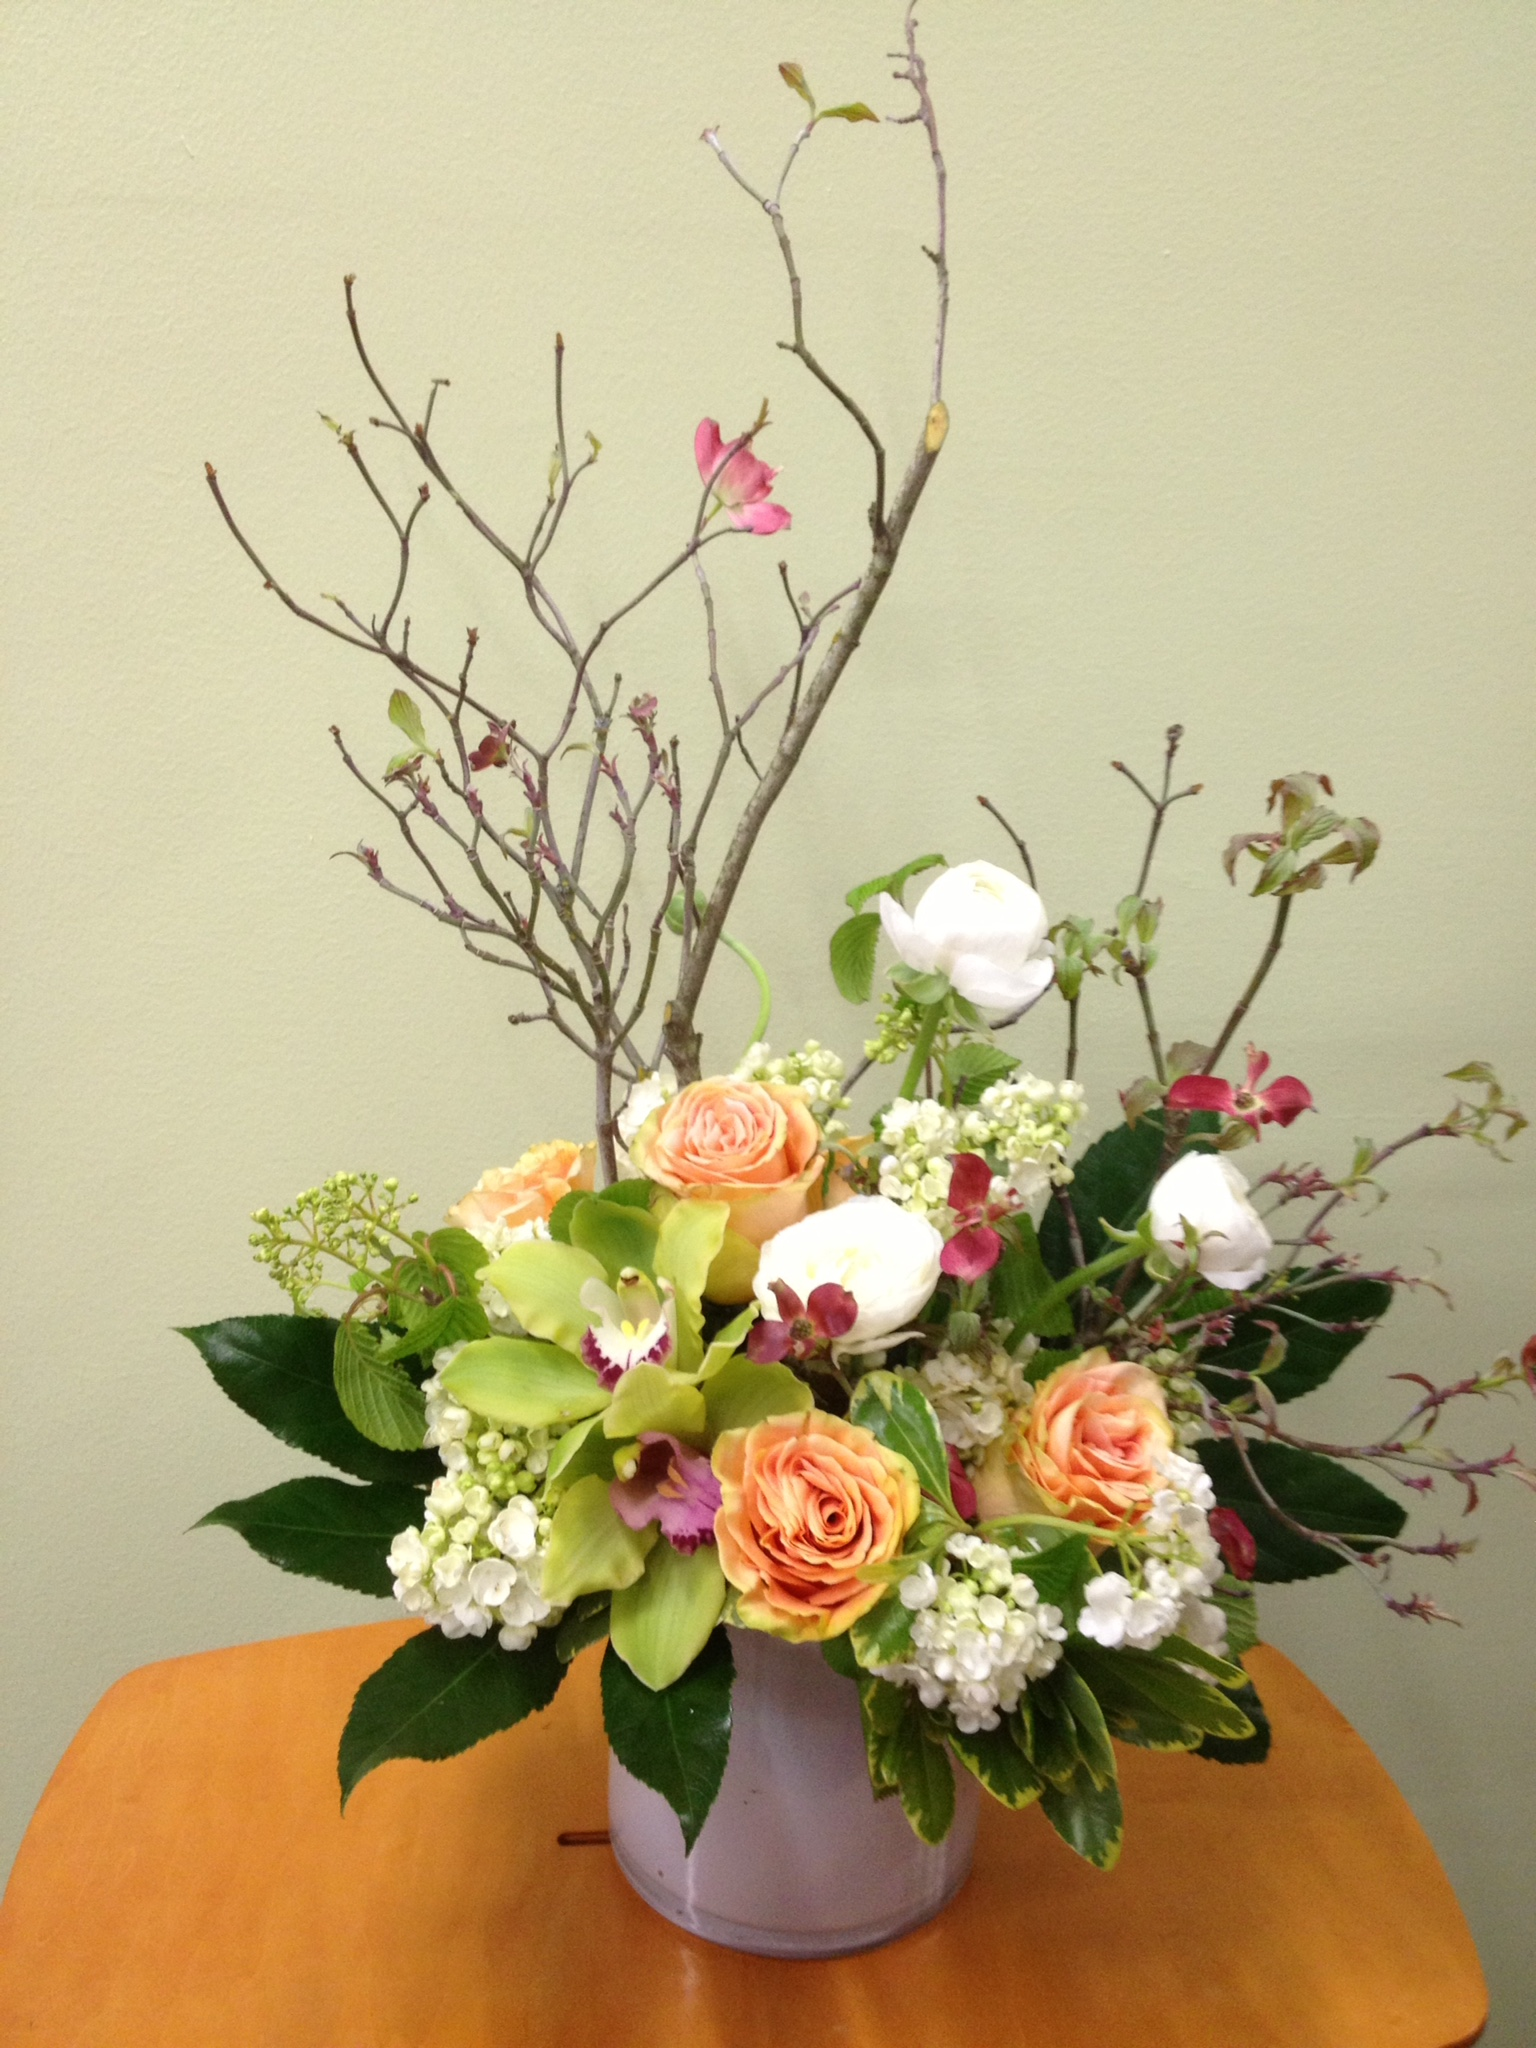 40. Lush with cyms hydrangea and blooming branch